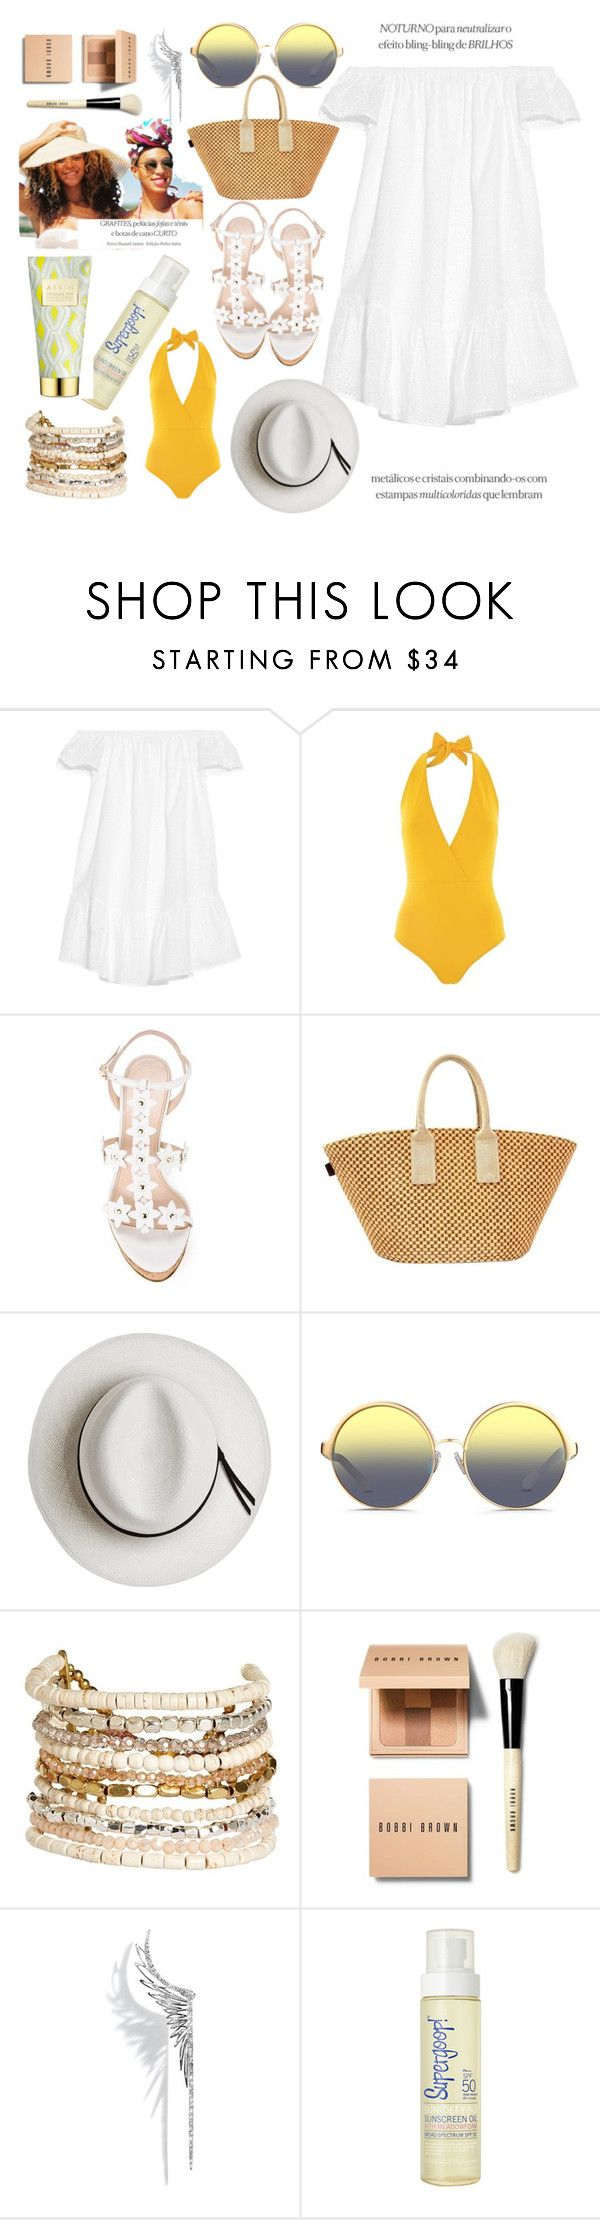 """Без названия #155"" by abk-2103 ❤ liked on Polyvore featuring Elizabeth and James, Lazul, Oscar de la Renta, Hermès, Calypso Private Label, Matthew Williamson, Panacea, Bobbi Brown Cosmetics, Cristina Ortiz and Supergoop!"